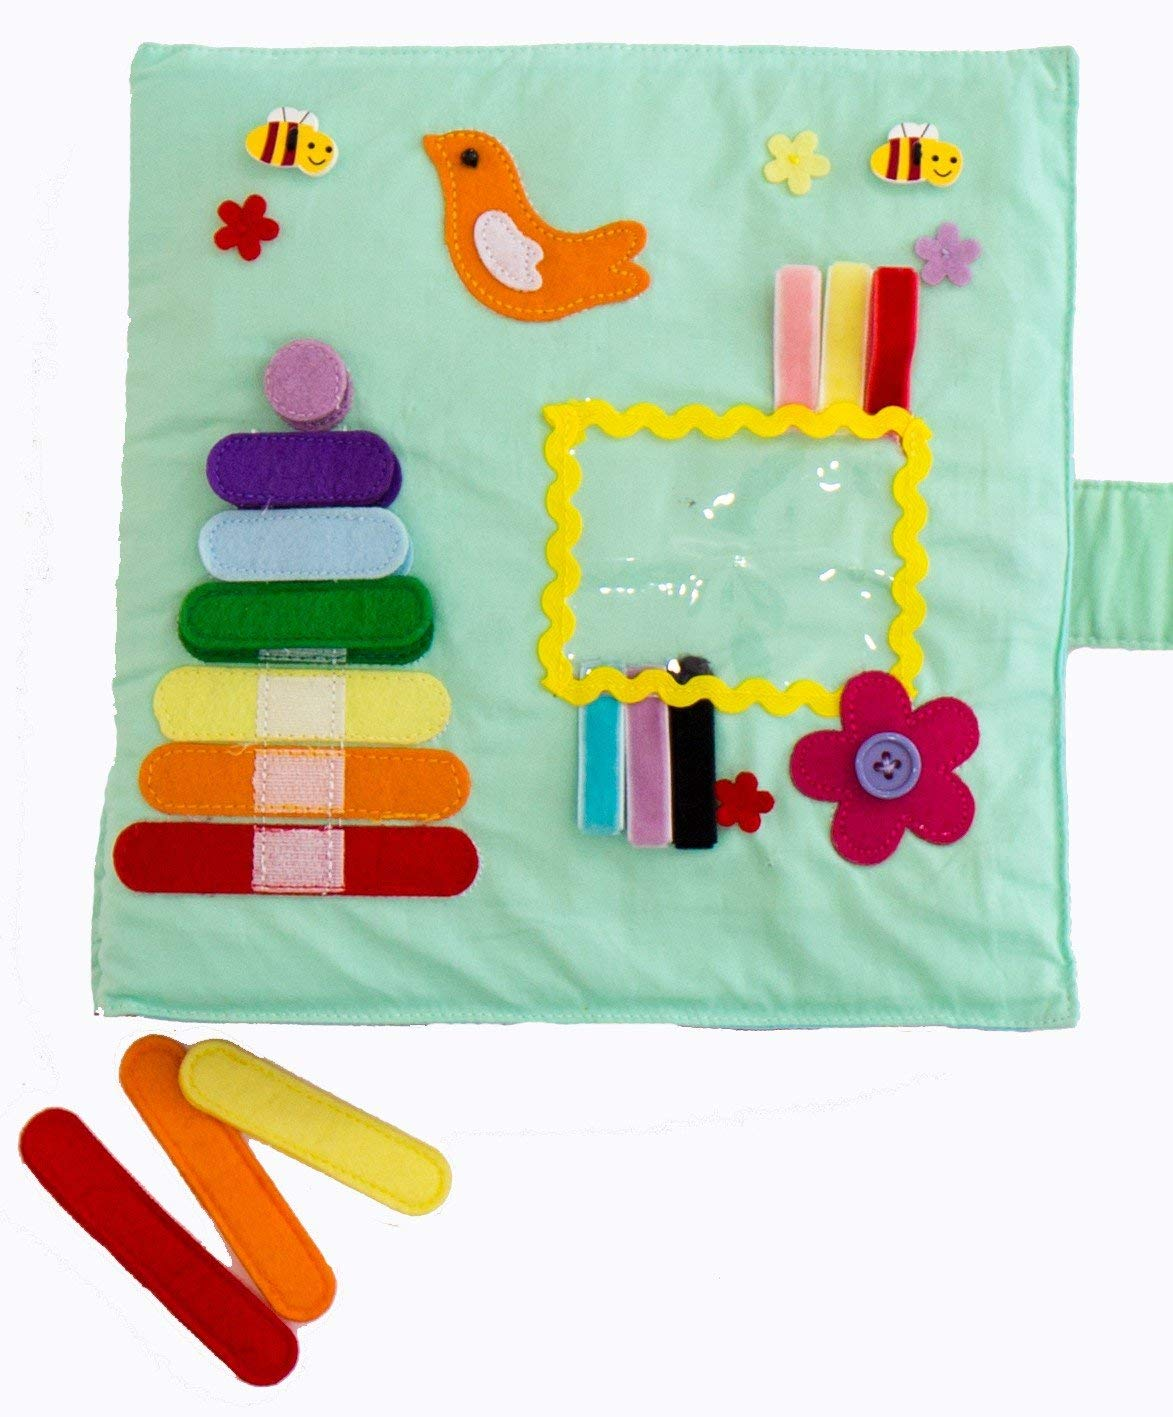 Play with Quiet Book, Educational Toy, Toddler Activity Book, Busy Book, Toy Book ZCRAFT GXFC-002